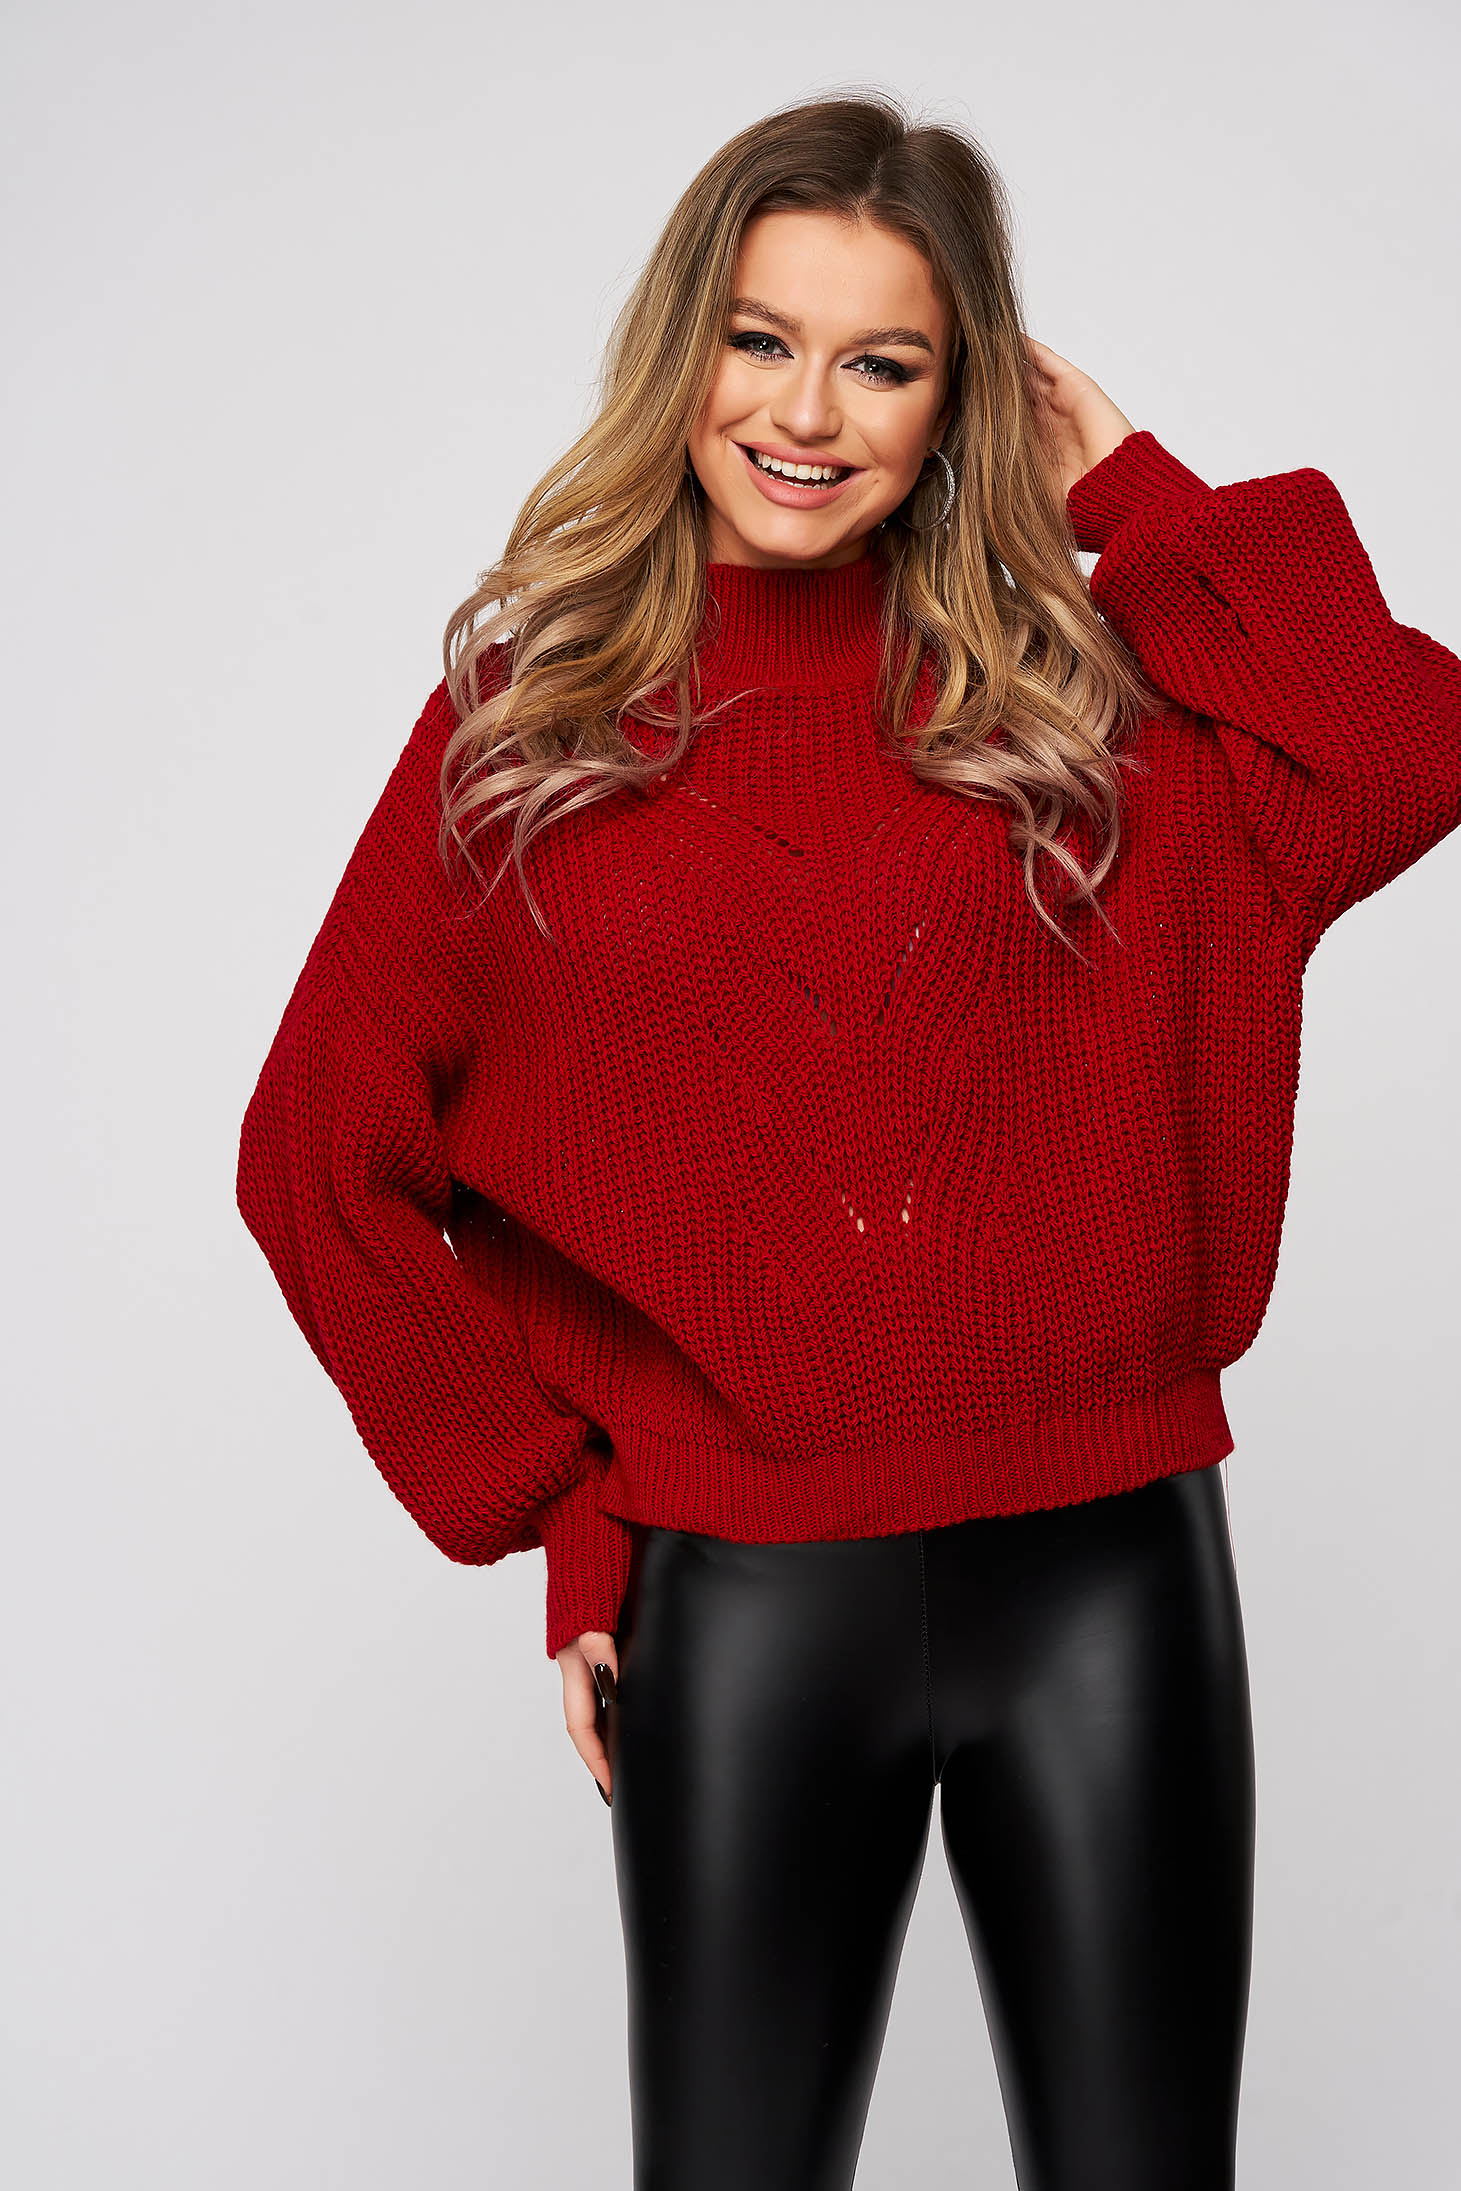 Red sweater knitted with puffed sleeves flared slightly transparent fabric